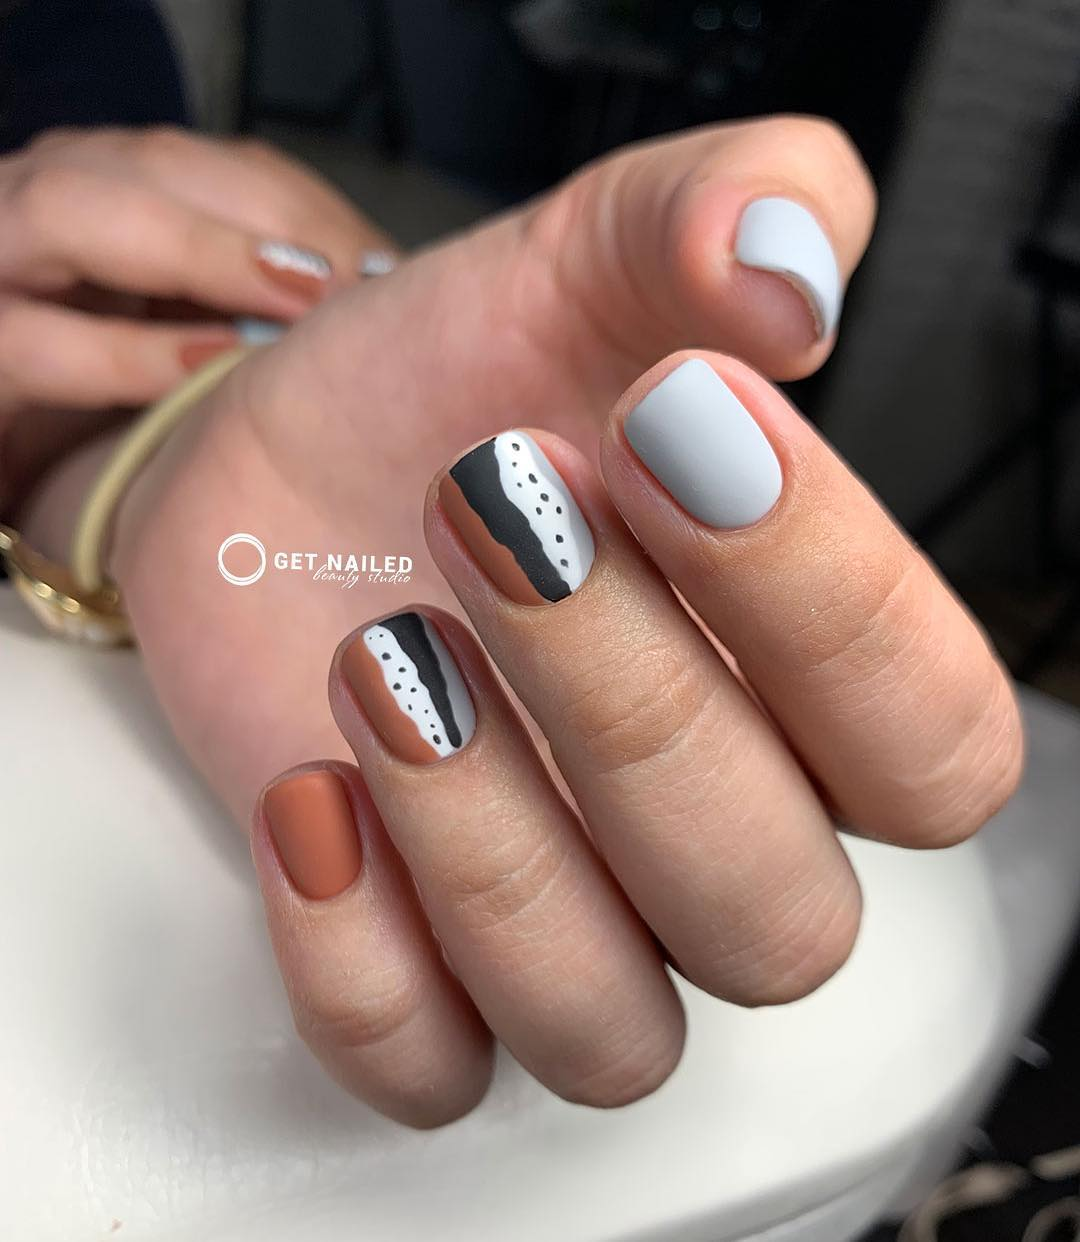 Matte nail art Nails done by KarinaYou can book your appointment on getnailed.co, through DM, WhatsApp +34 680 576 151 or simply by leaving a comment ..luxiogel